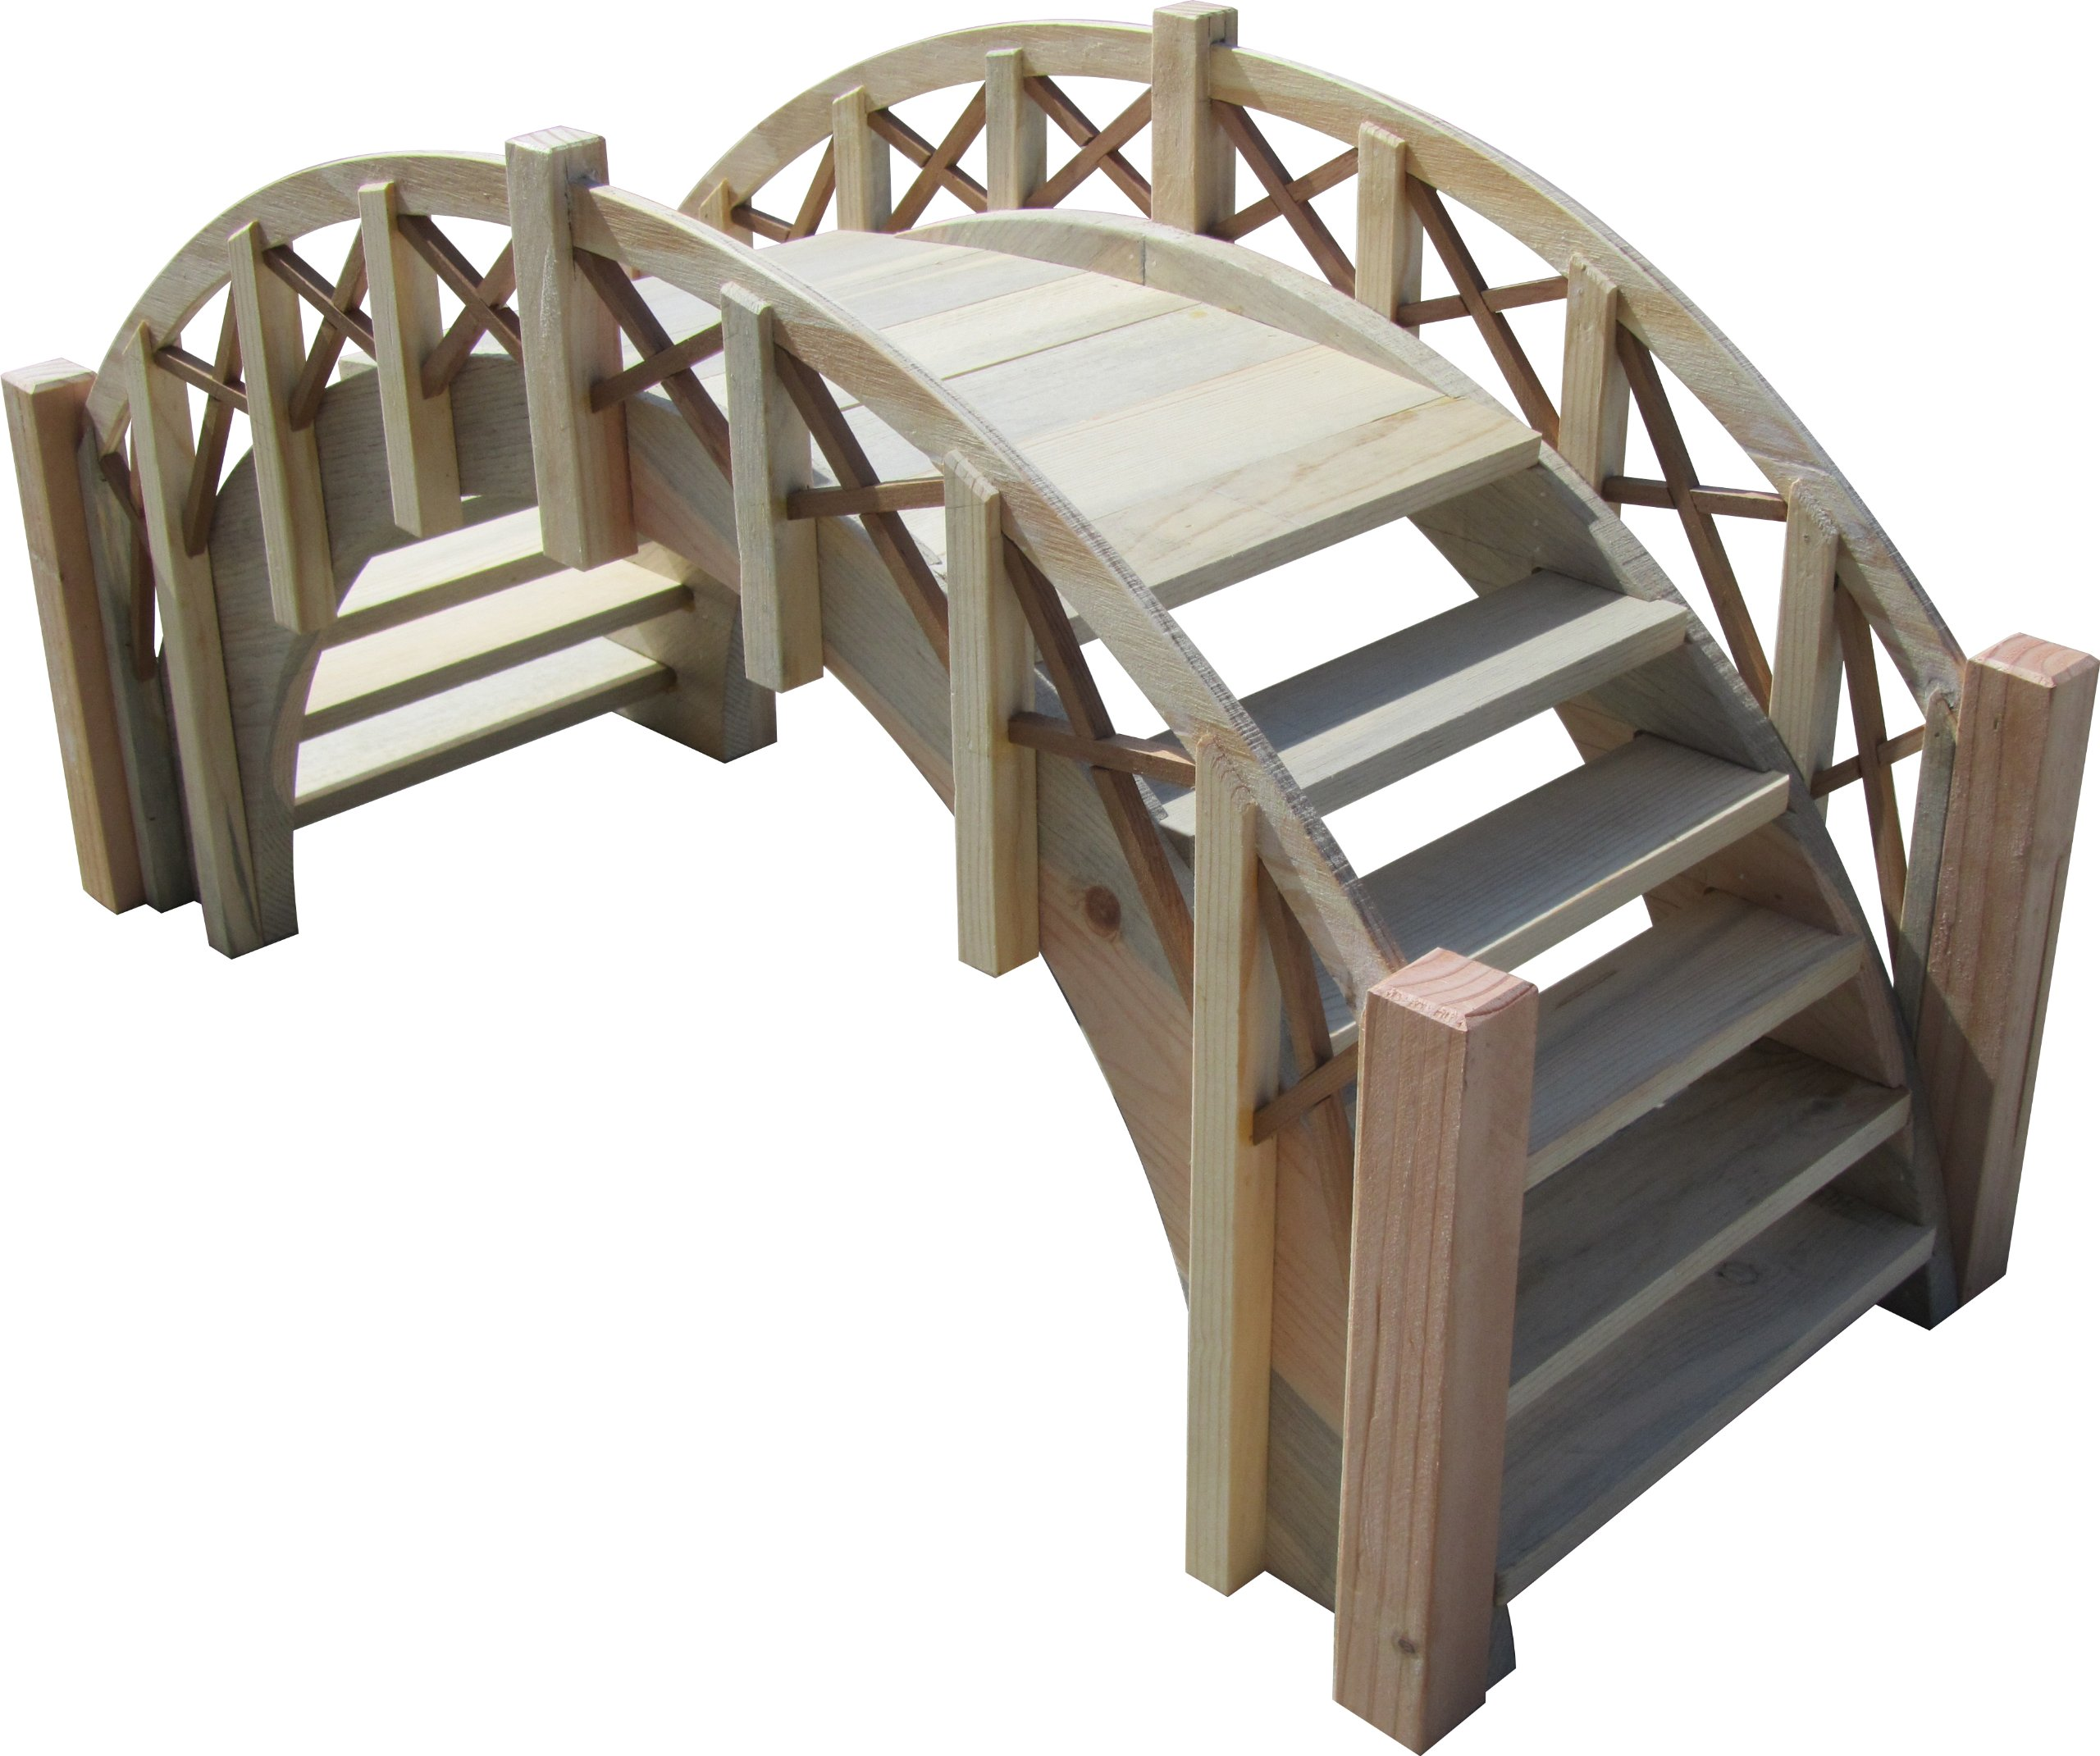 SamsGazebos Fairy Tale Garden Bridge with Decorative Lattice Railings and Steps, 33'' L, Unfinished